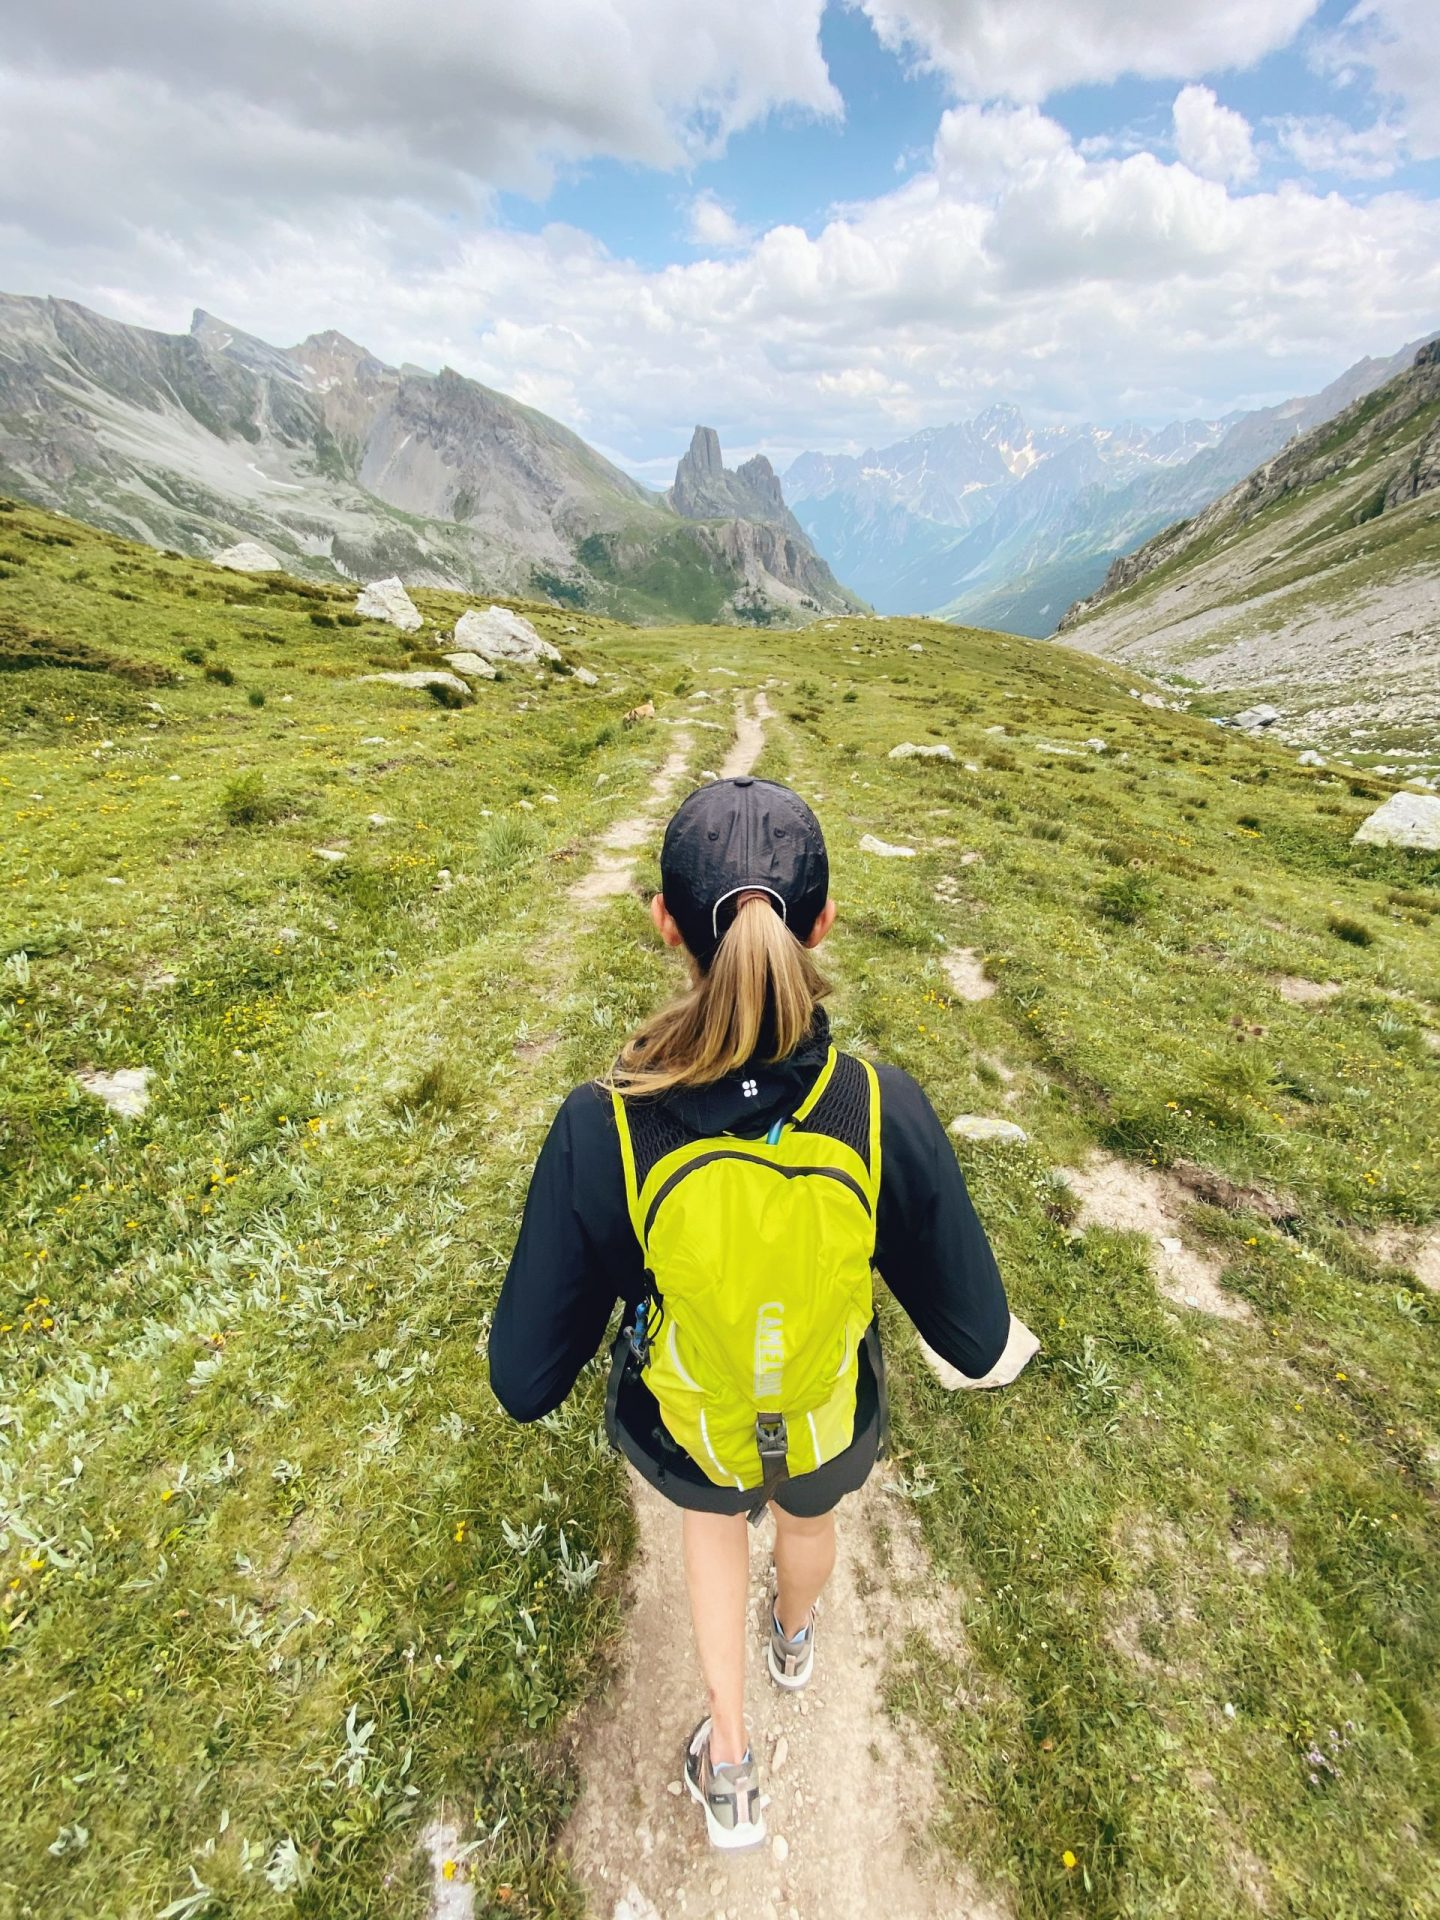 Hiking: My Top Ten Tips If You Are Just Starting Out